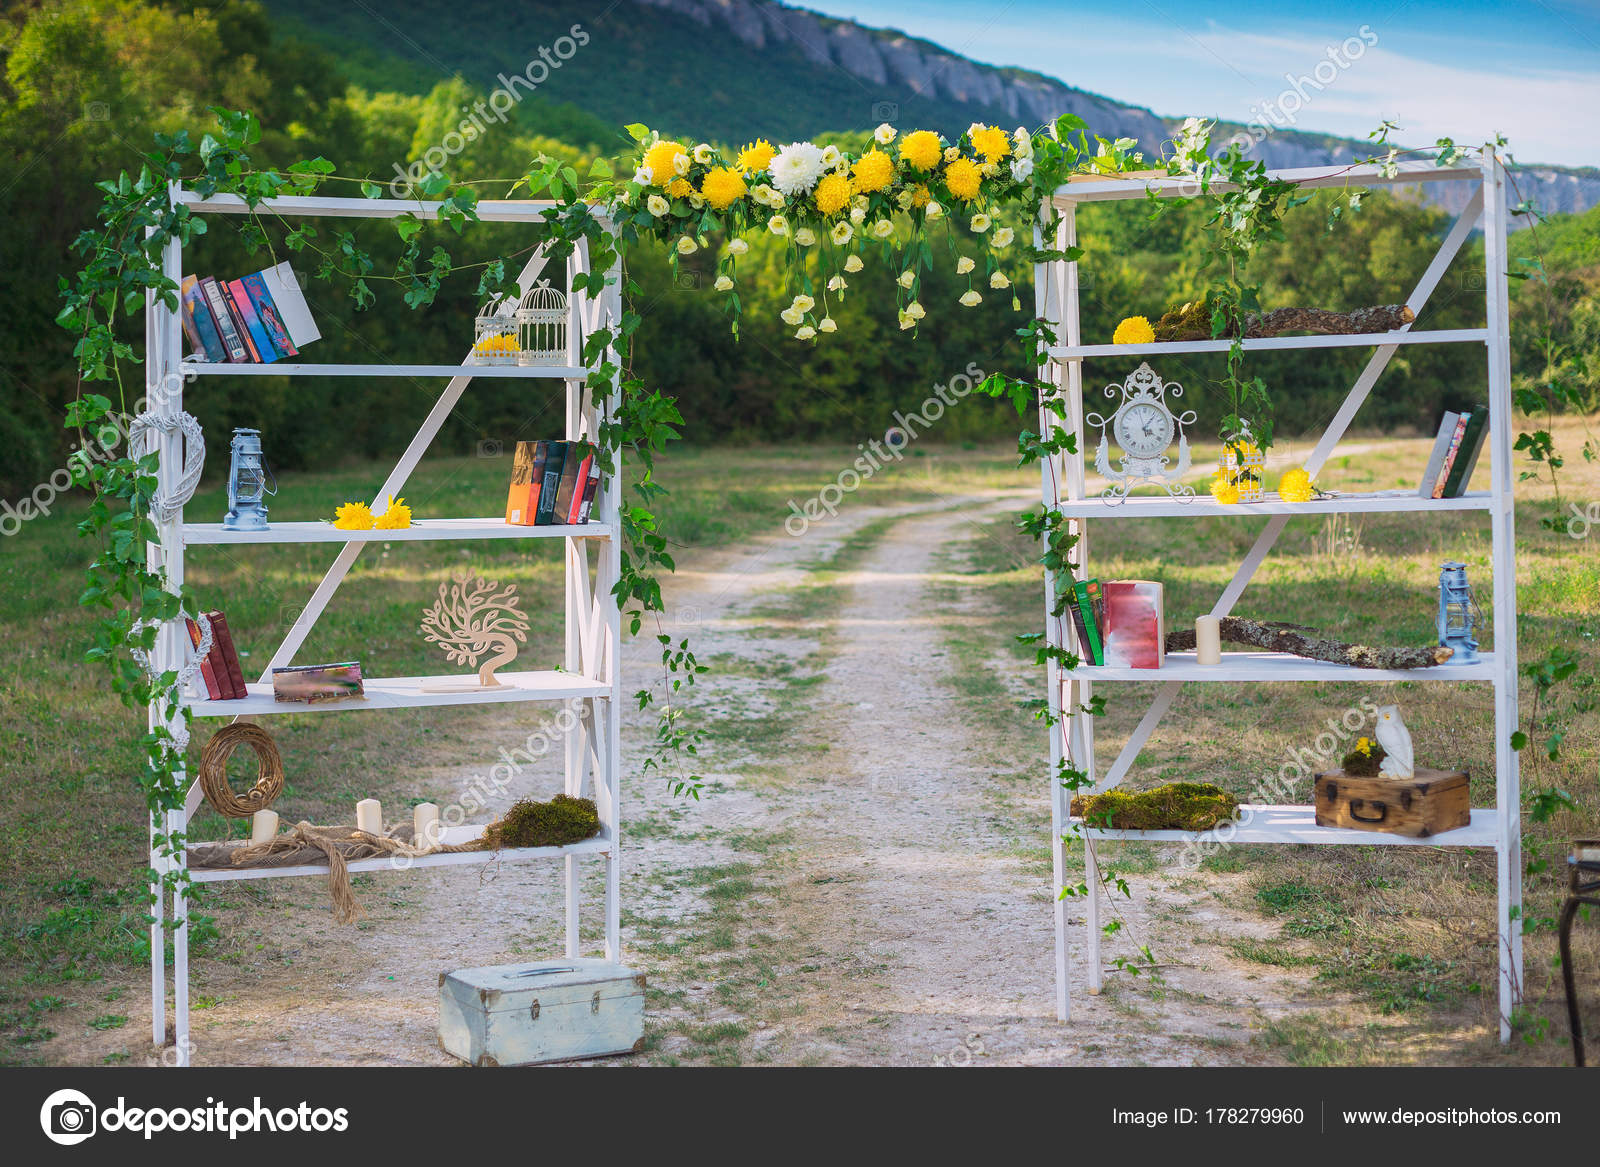 Wedding decor wedding on a plate green background and a mountains wedding decor wedding on a plate green background and a mountains wedding decorations pears and moss tints of green and yellow photo by santiaga junglespirit Images